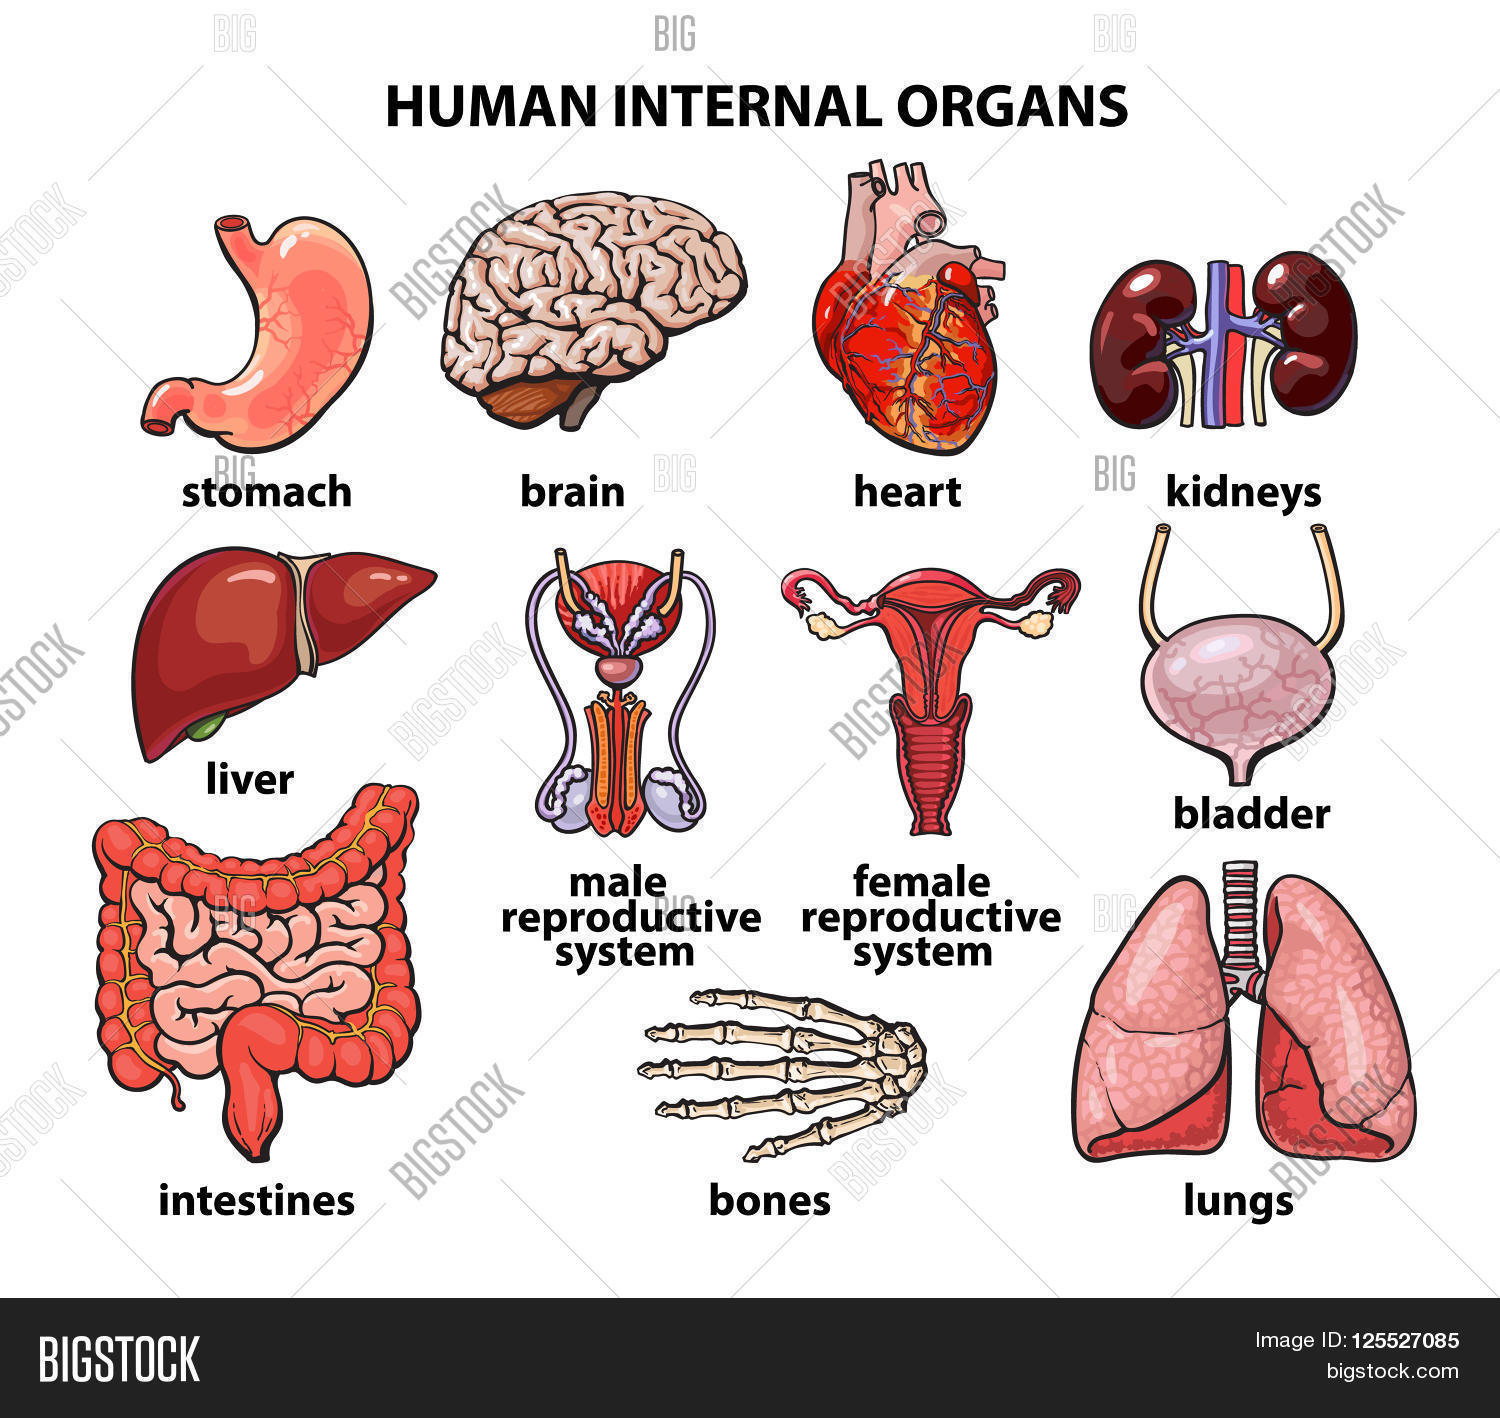 Human Organs Internal Image Photo Free Trial Bigstock